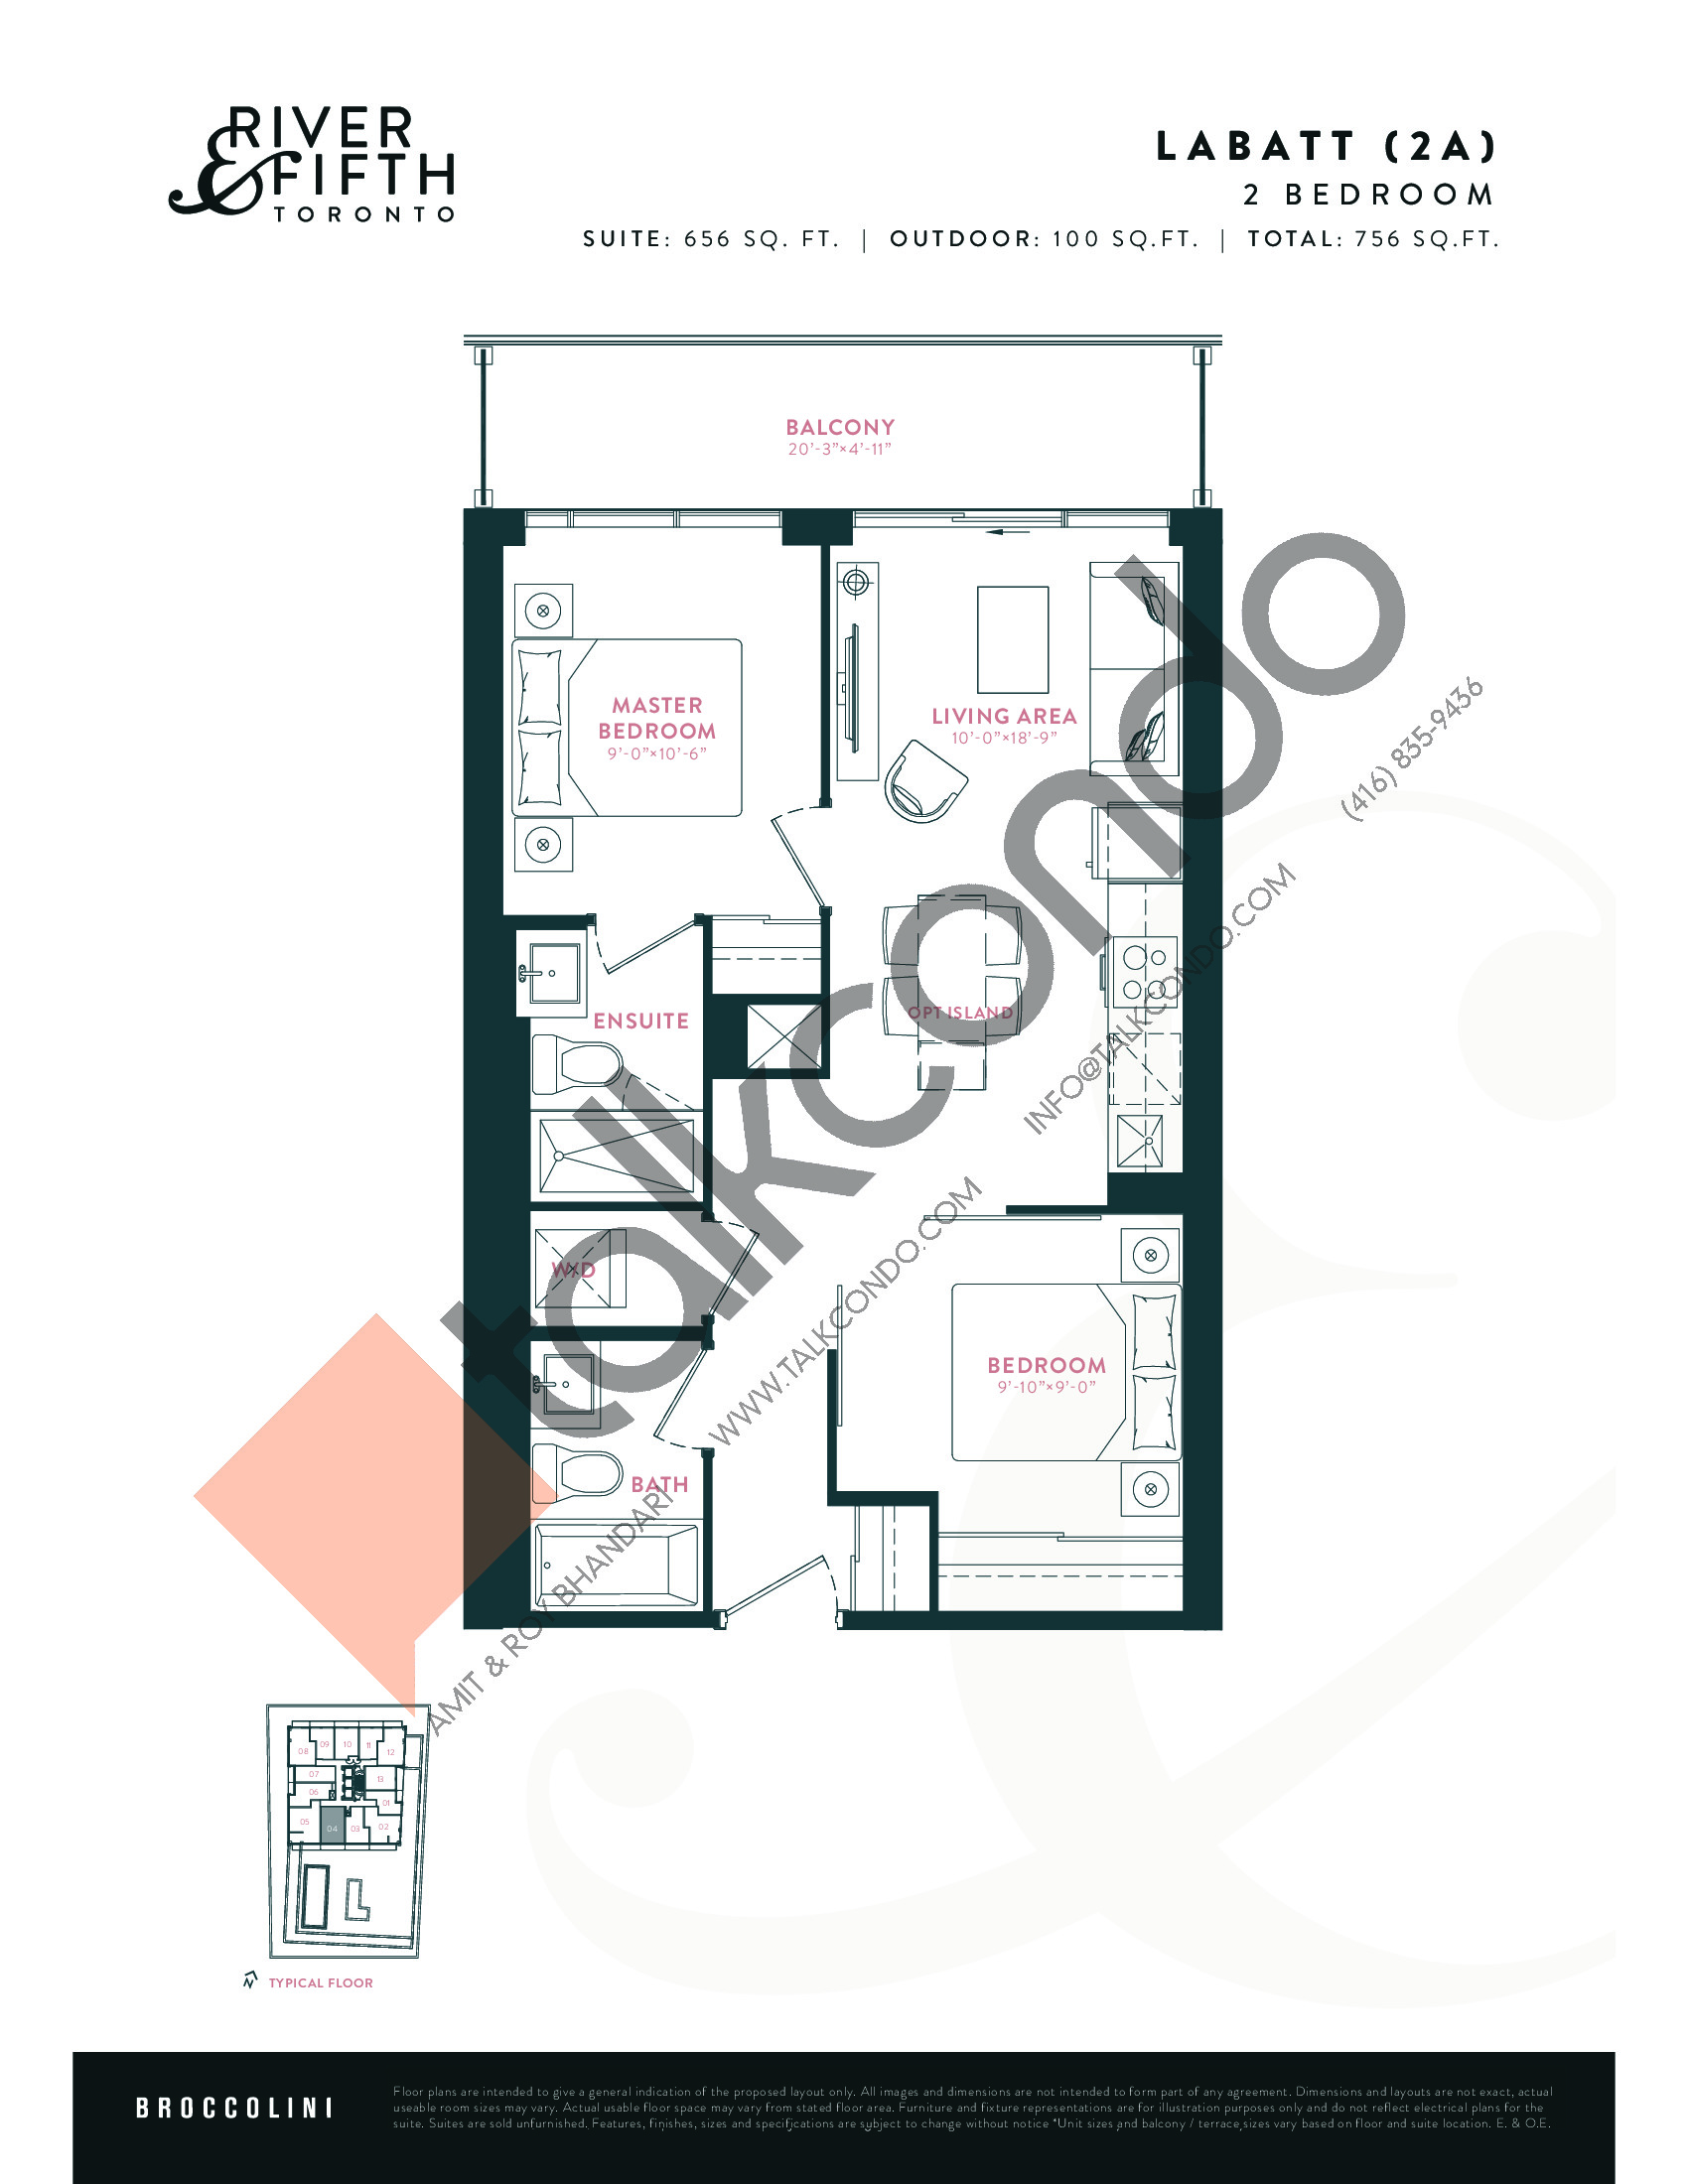 Labatt (2A) Floor Plan at River & Fifth Condos - 656 sq.ft